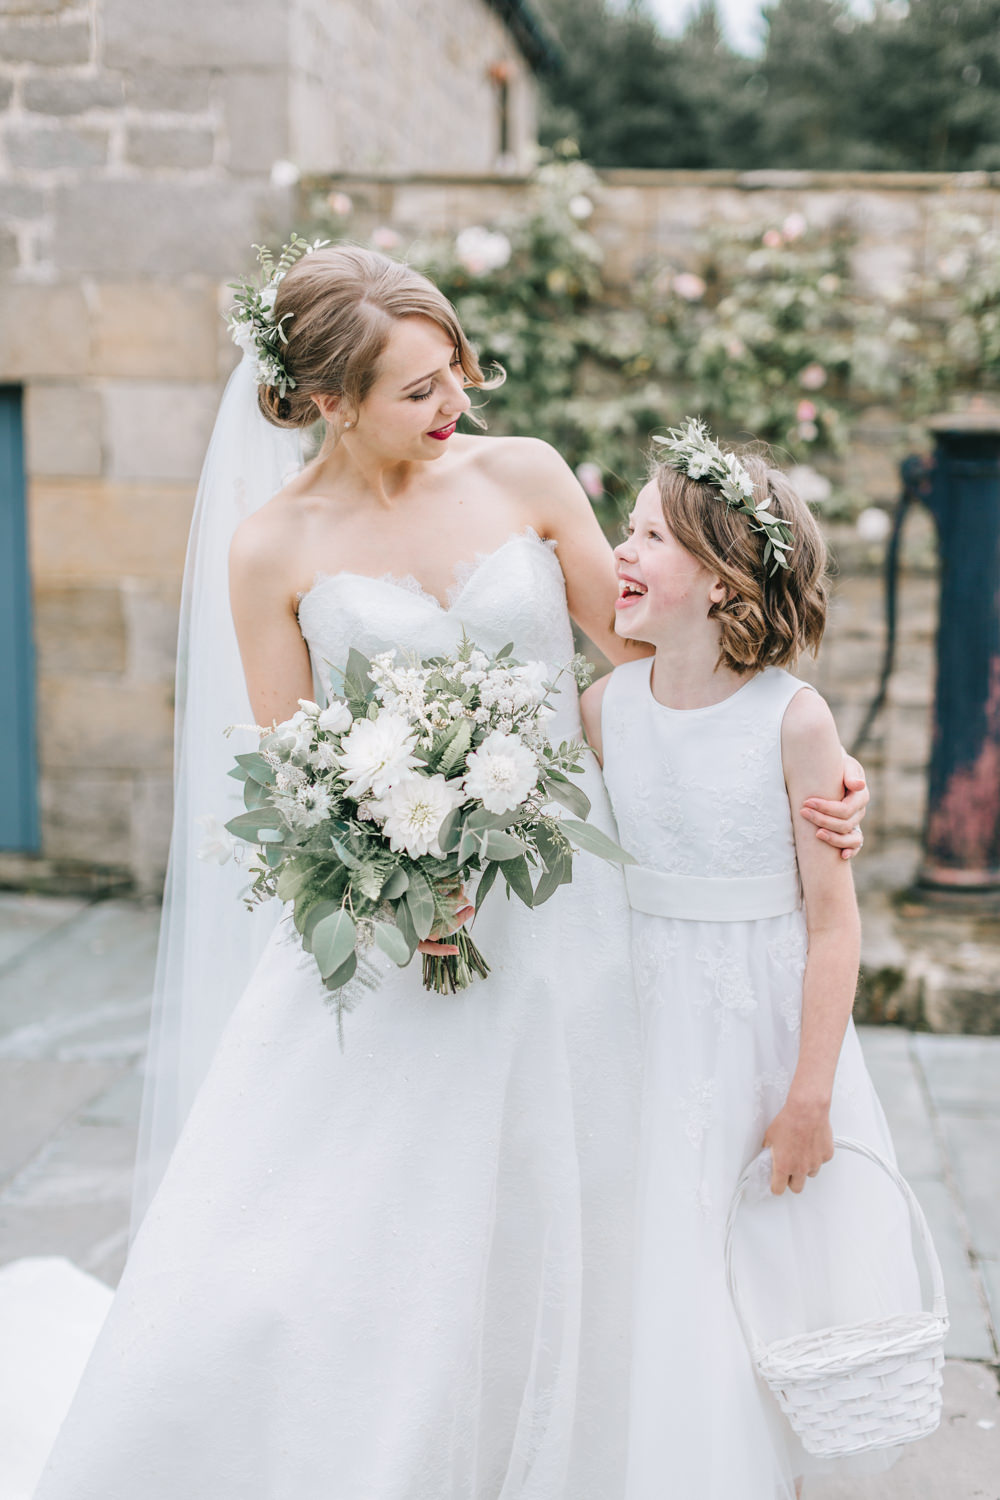 Bride Bridal Dress Gown Lace Strapless A Line Skirt Flower Girl Healey Barn Wedding Amy Lou Photography